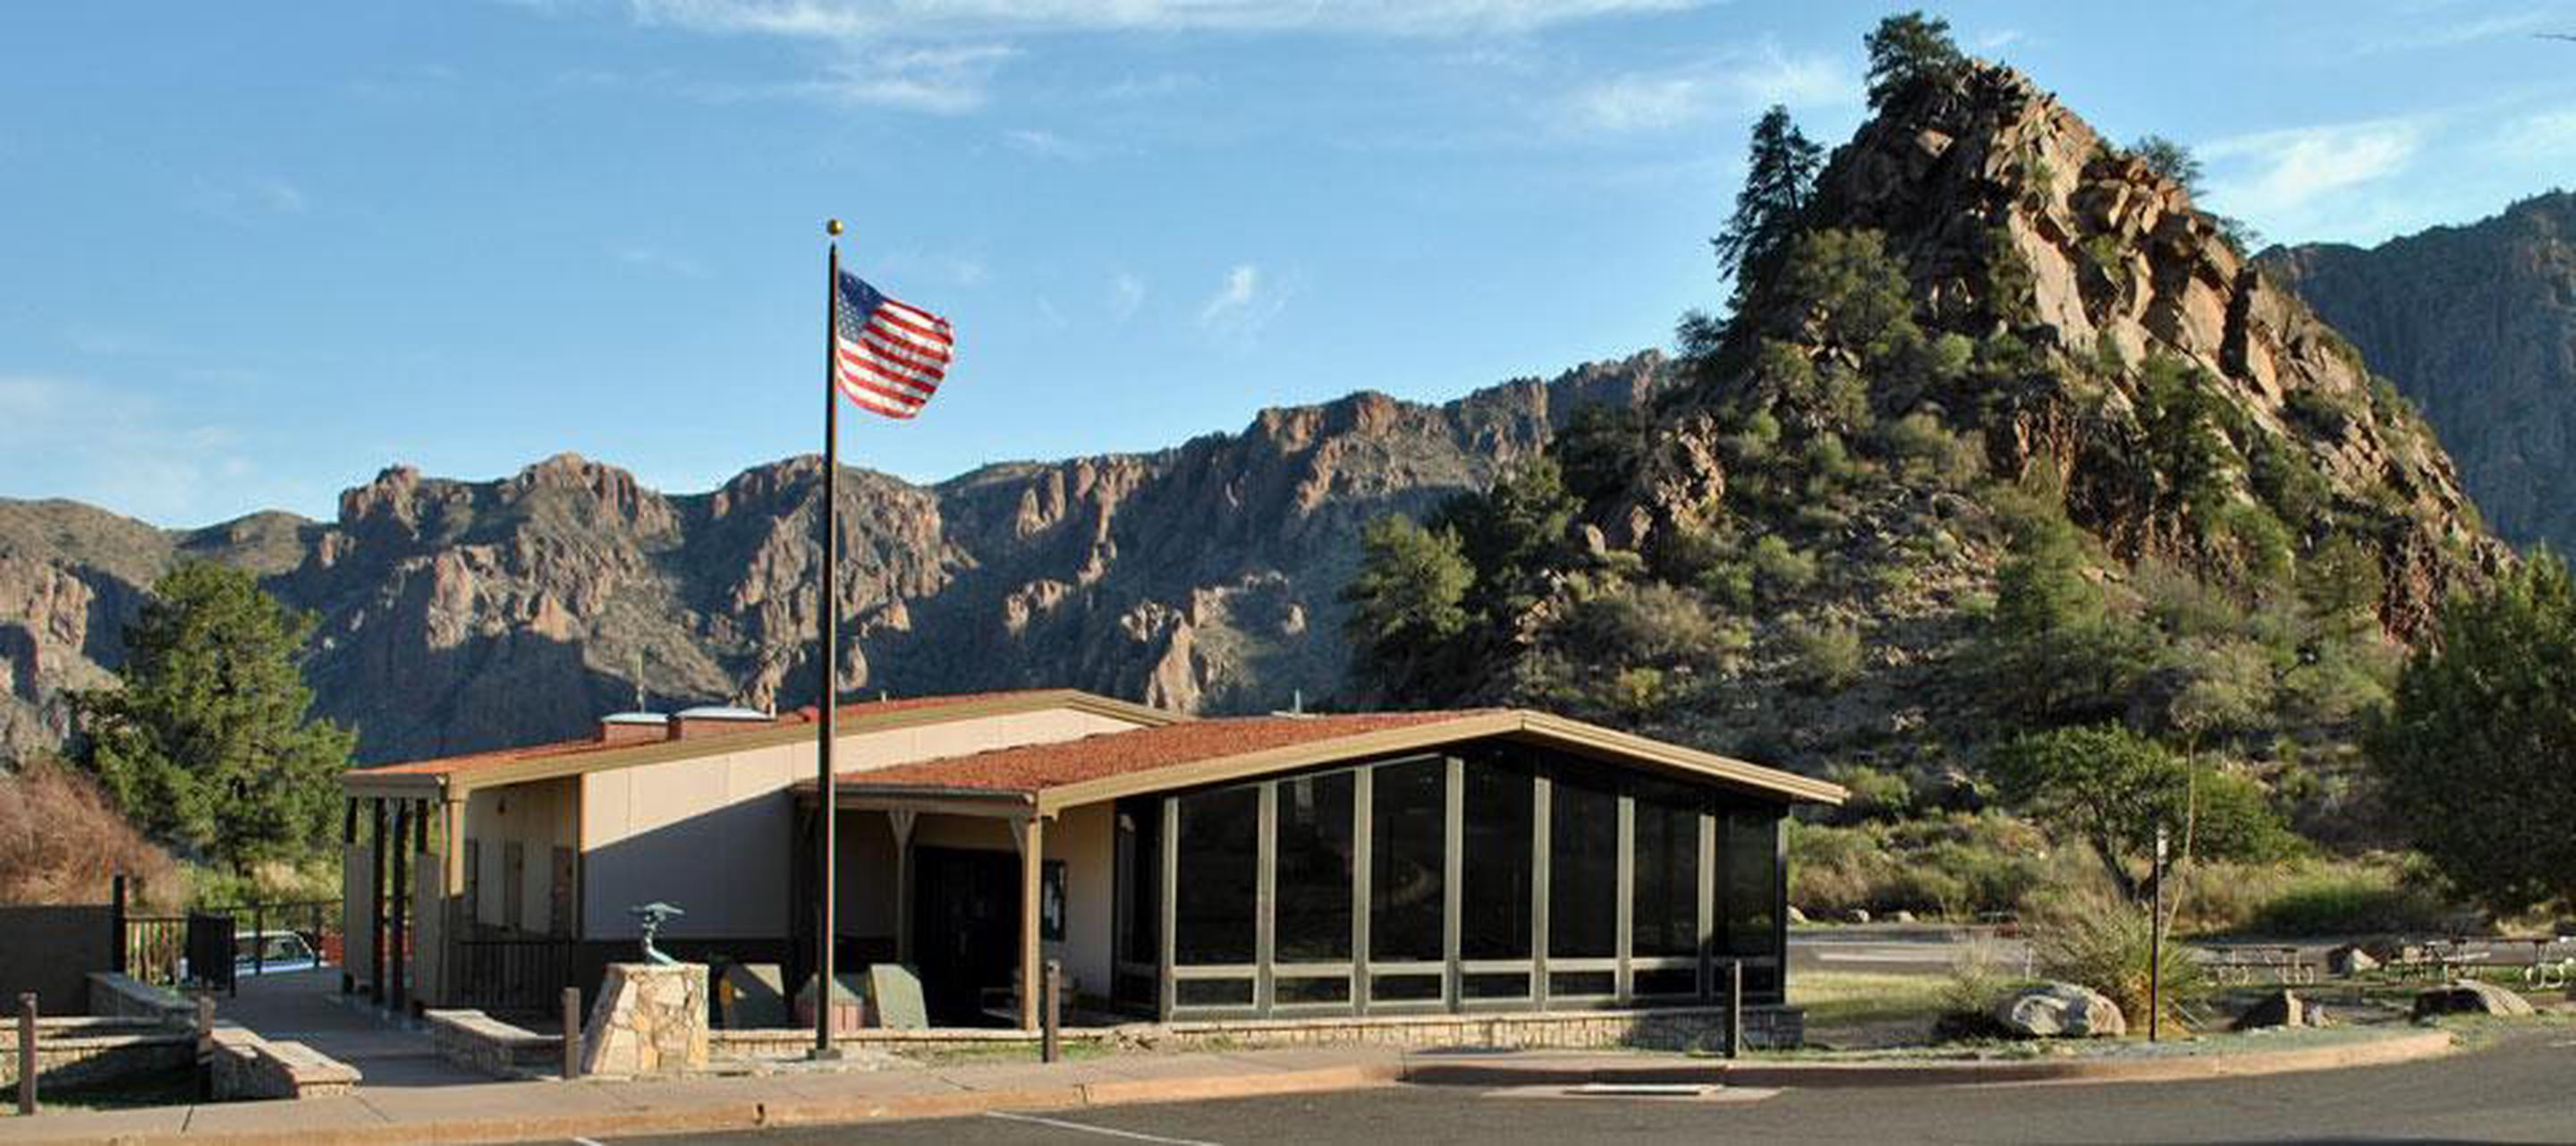 Chisos Basin Visitor CenterChisos Basin Visitor Center is a great place to plan your hike in the Chisos Mountains.